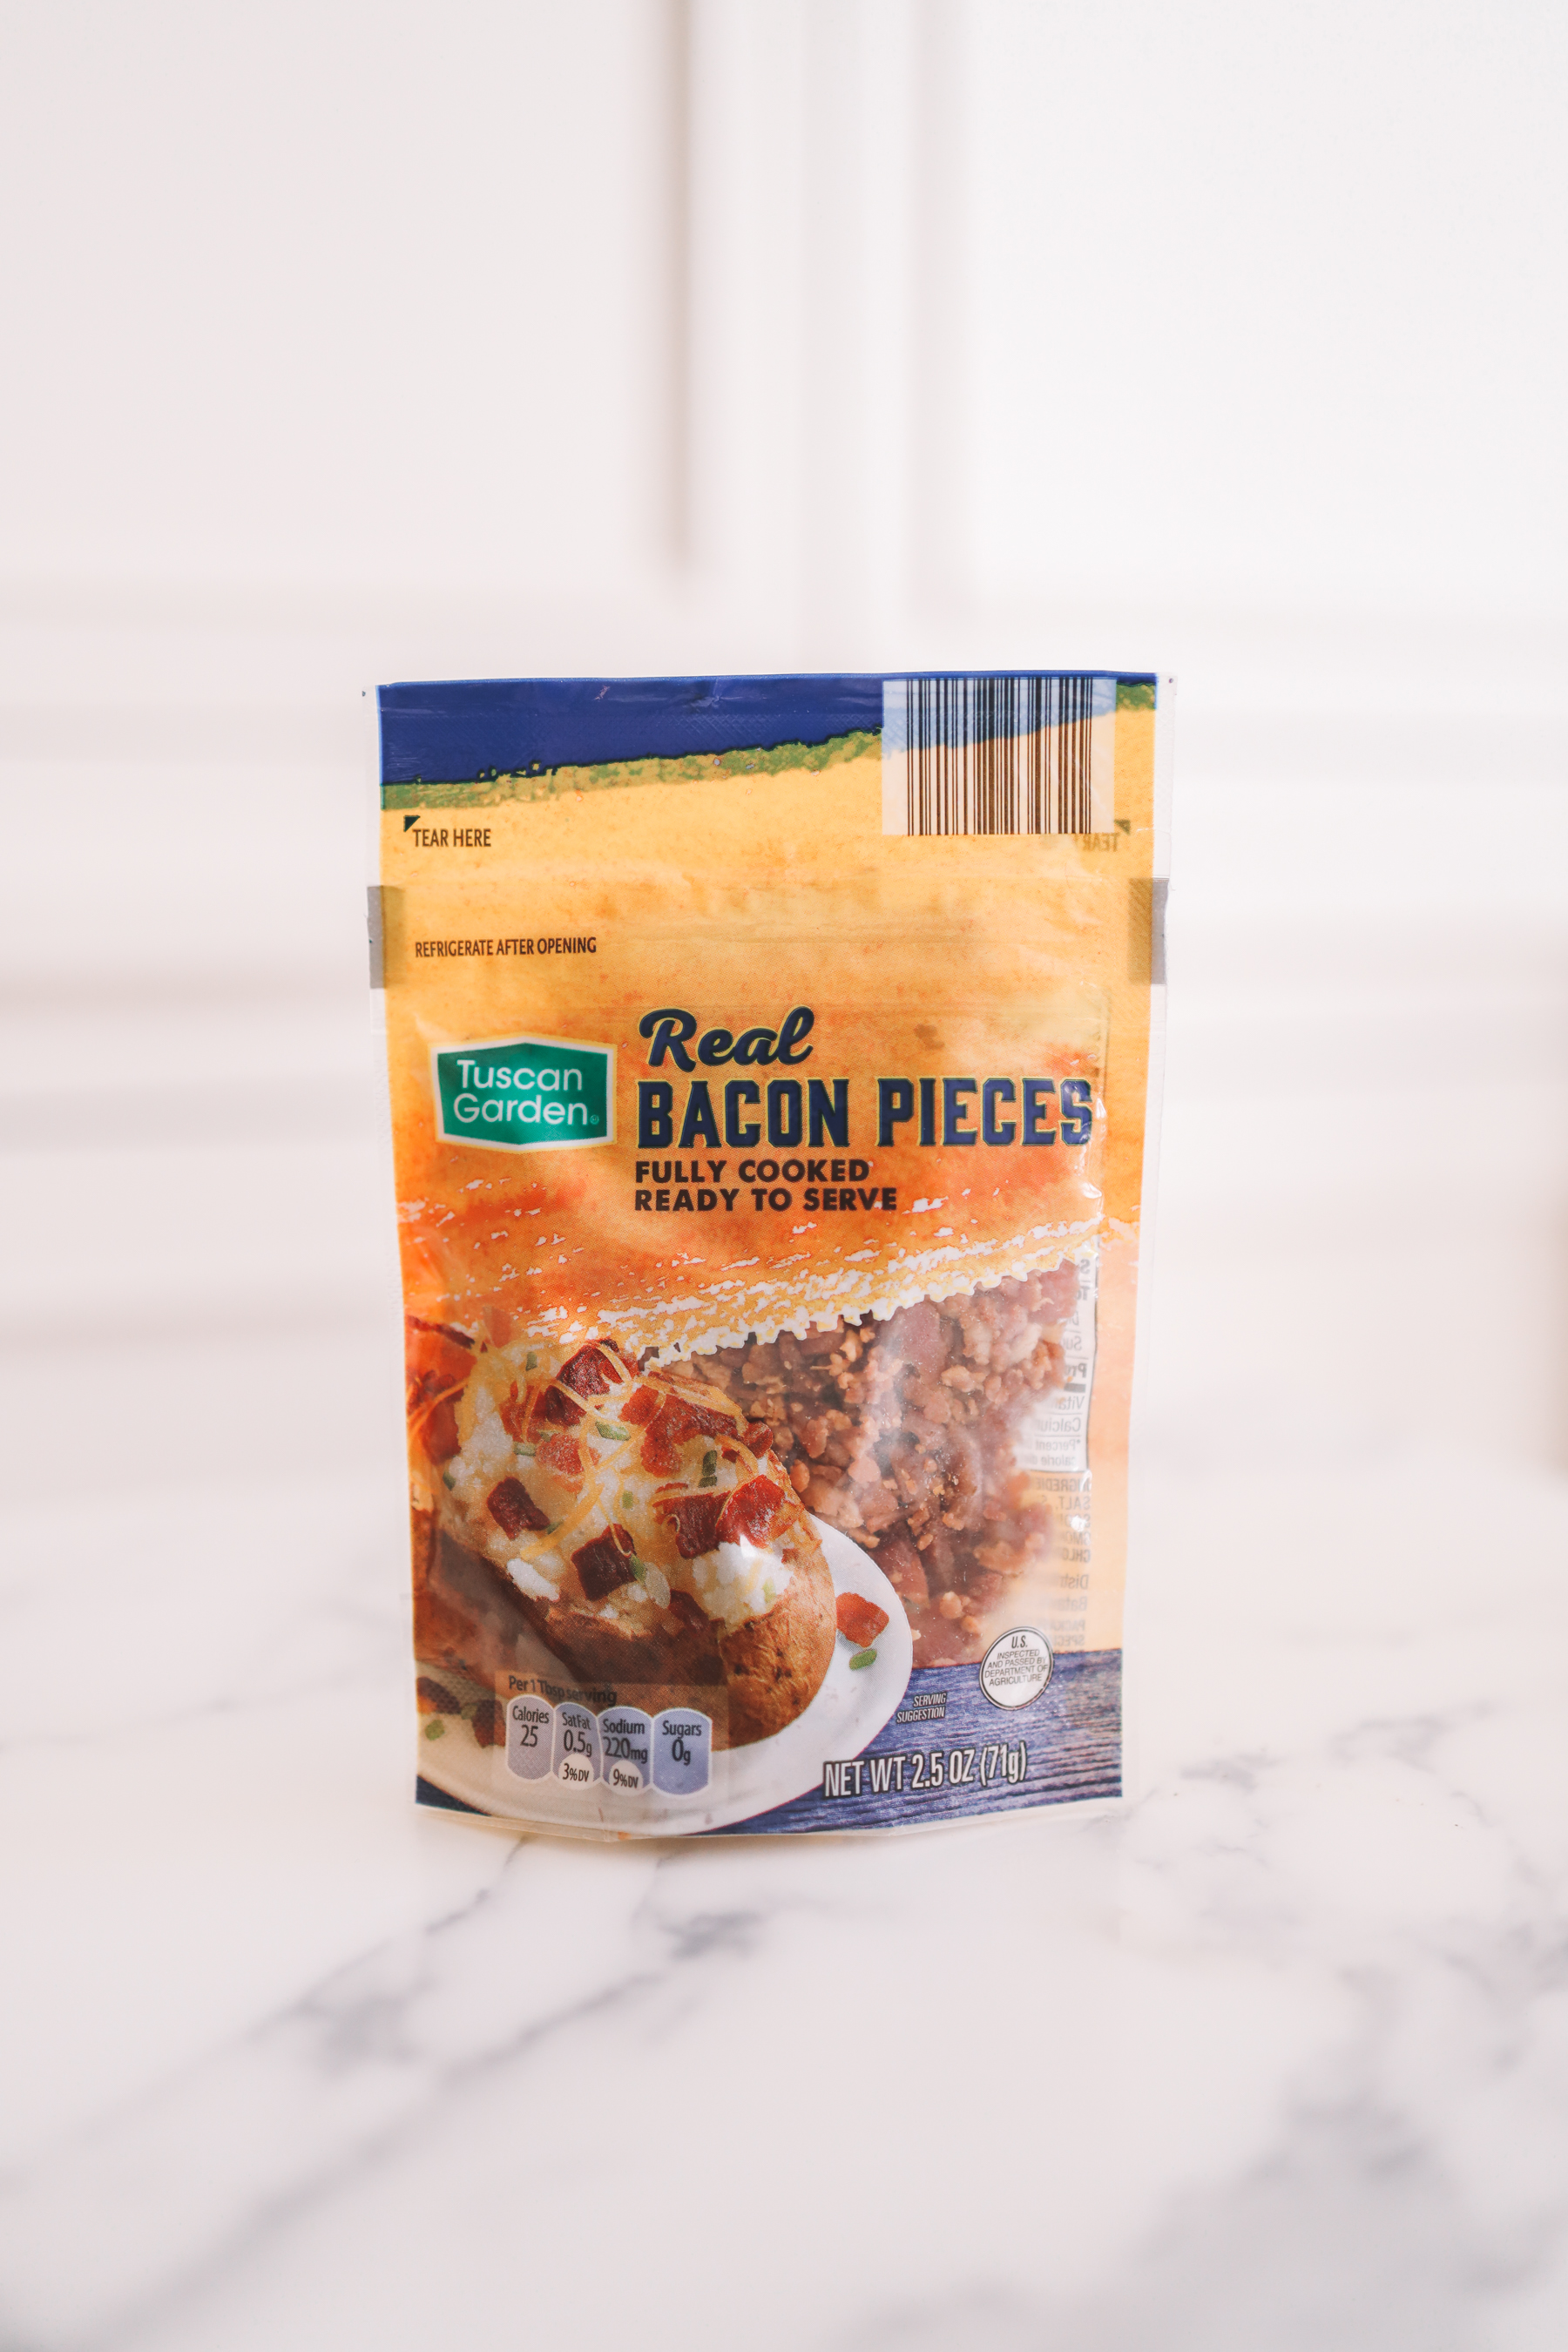 Aldi products - 5. Tuscan Garden Real Bacon Pieces